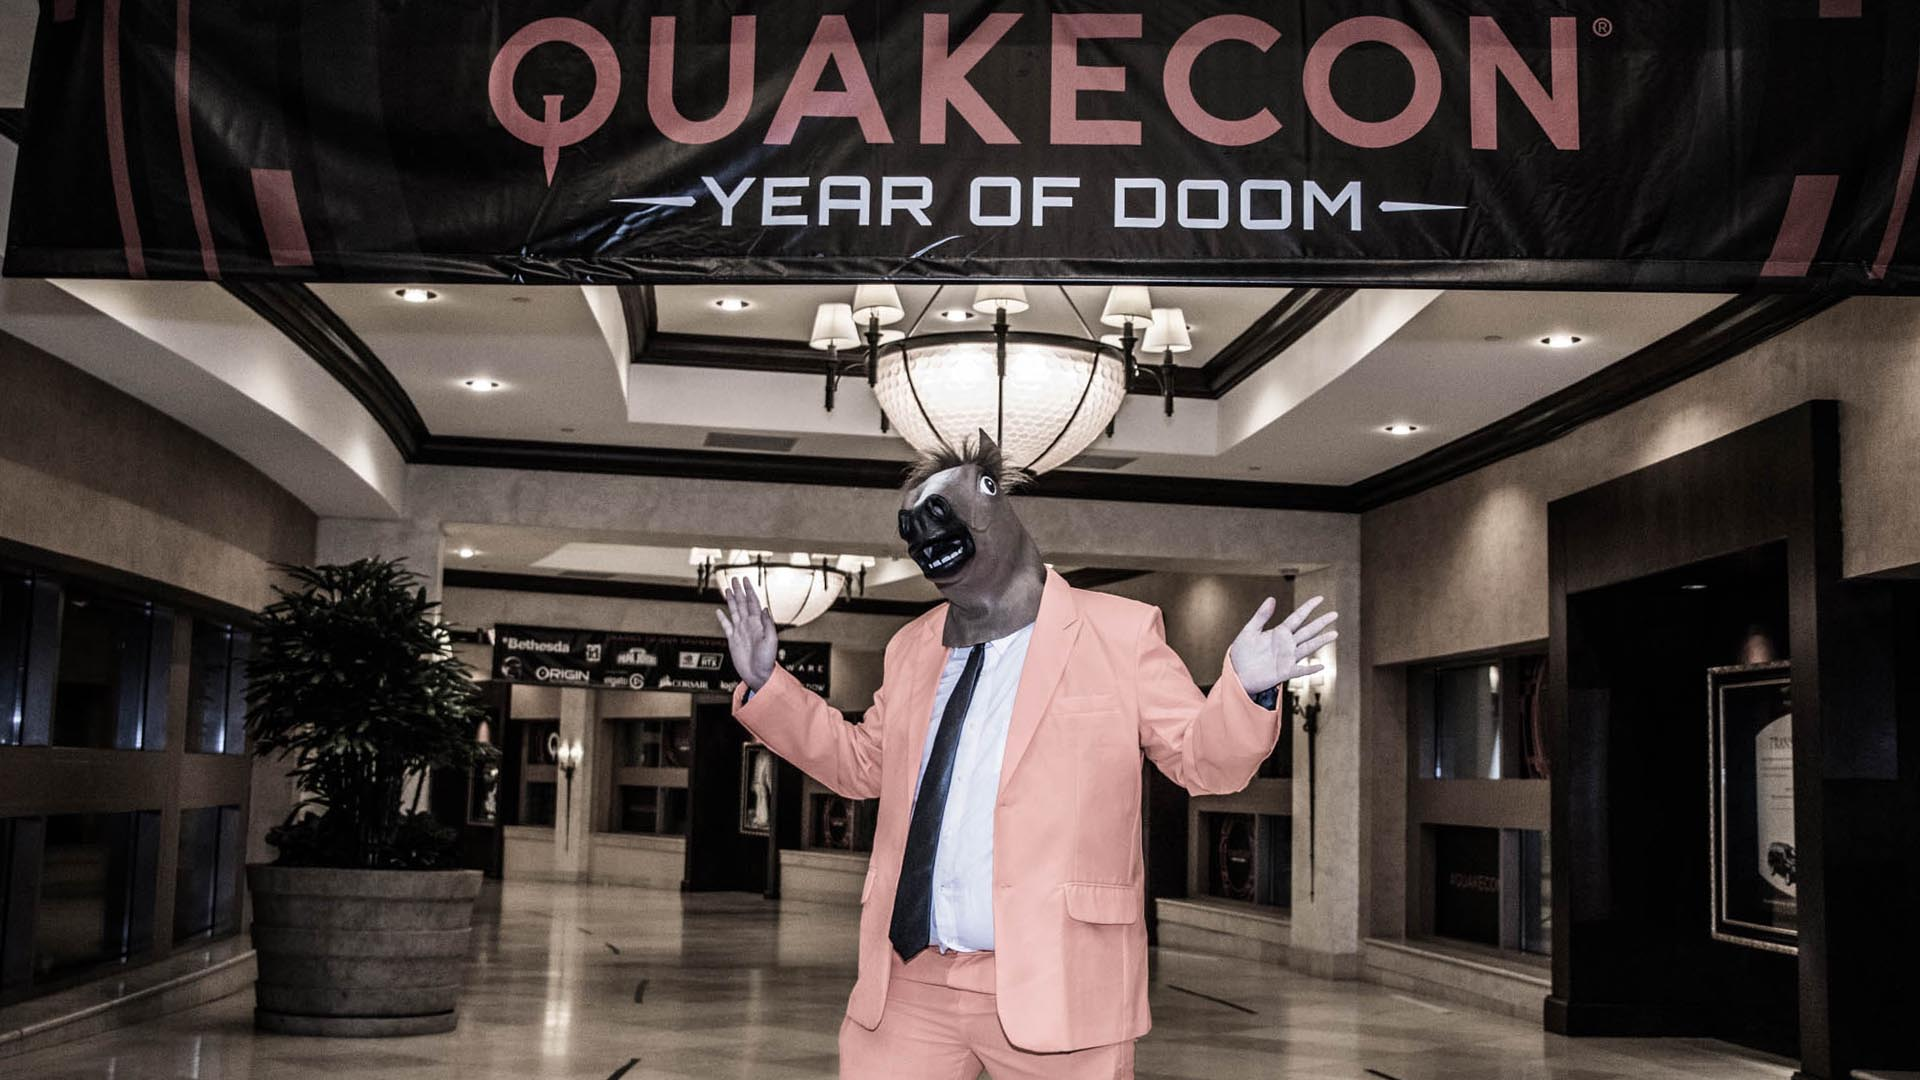 quakecon2019 photos - web